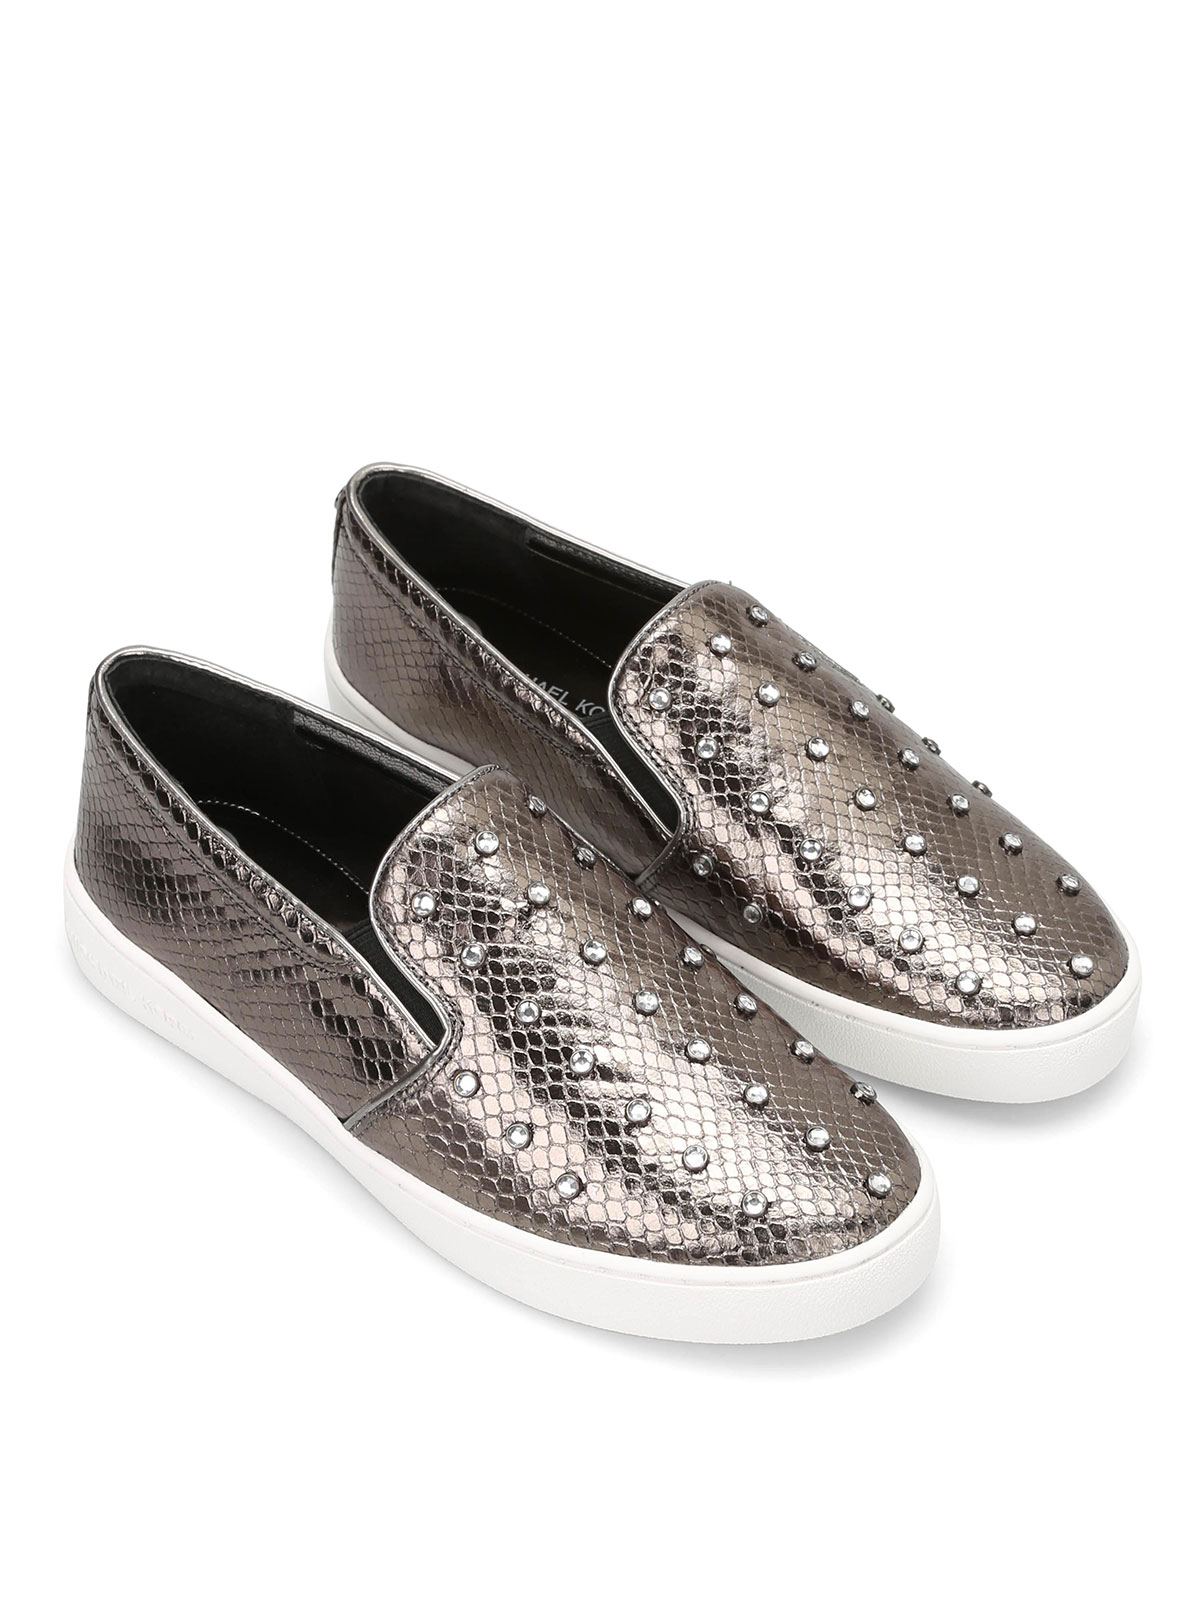 petra slip ons by michael kors loafers slippers shop. Black Bedroom Furniture Sets. Home Design Ideas